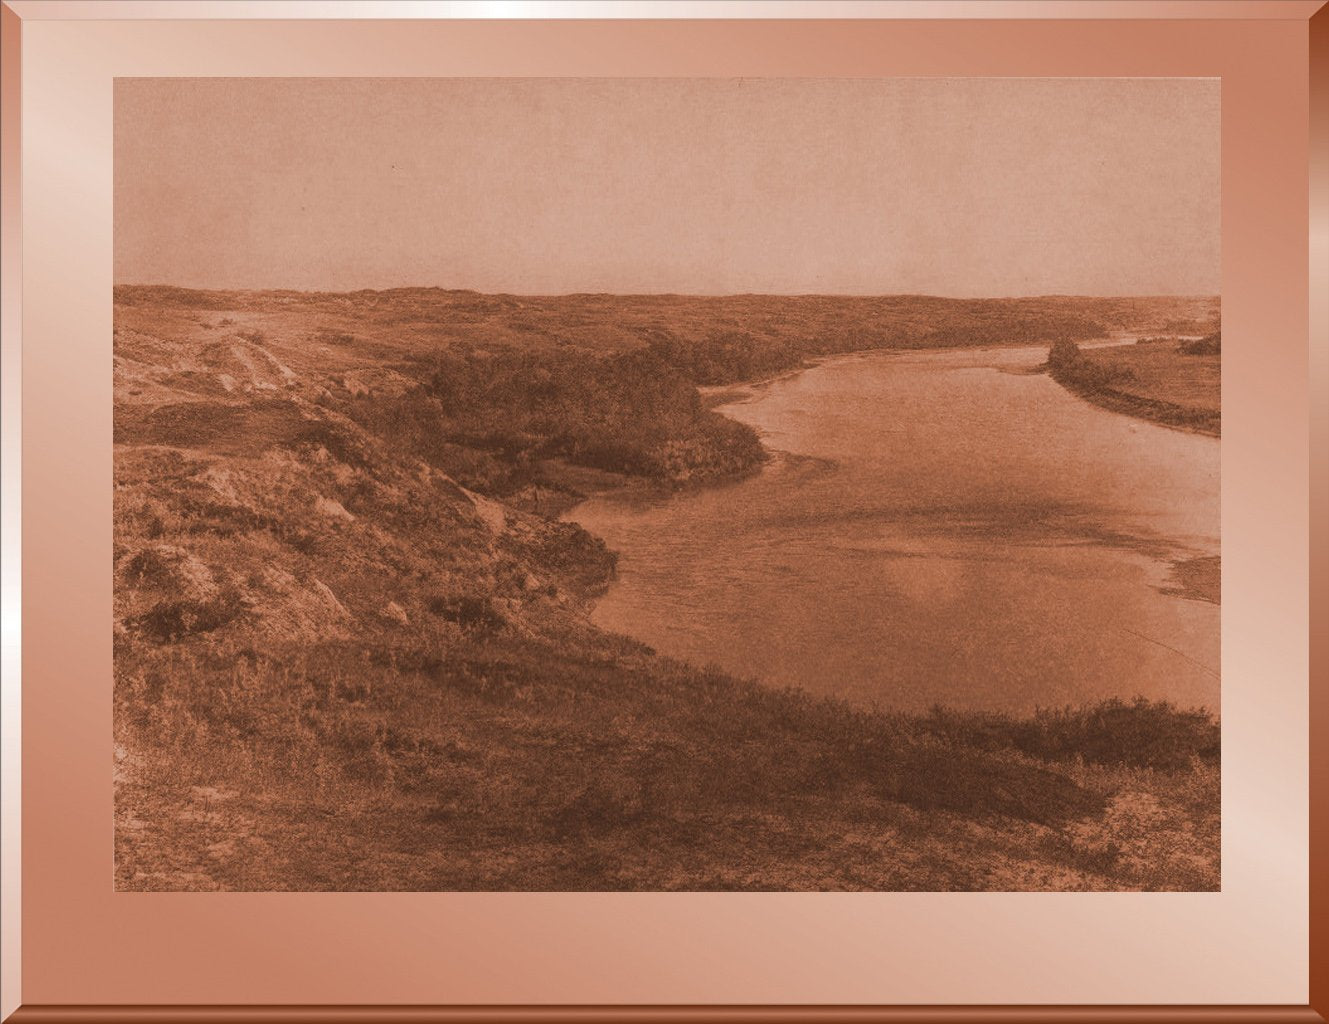 Bow River and the Sand Hills -Blackfoot